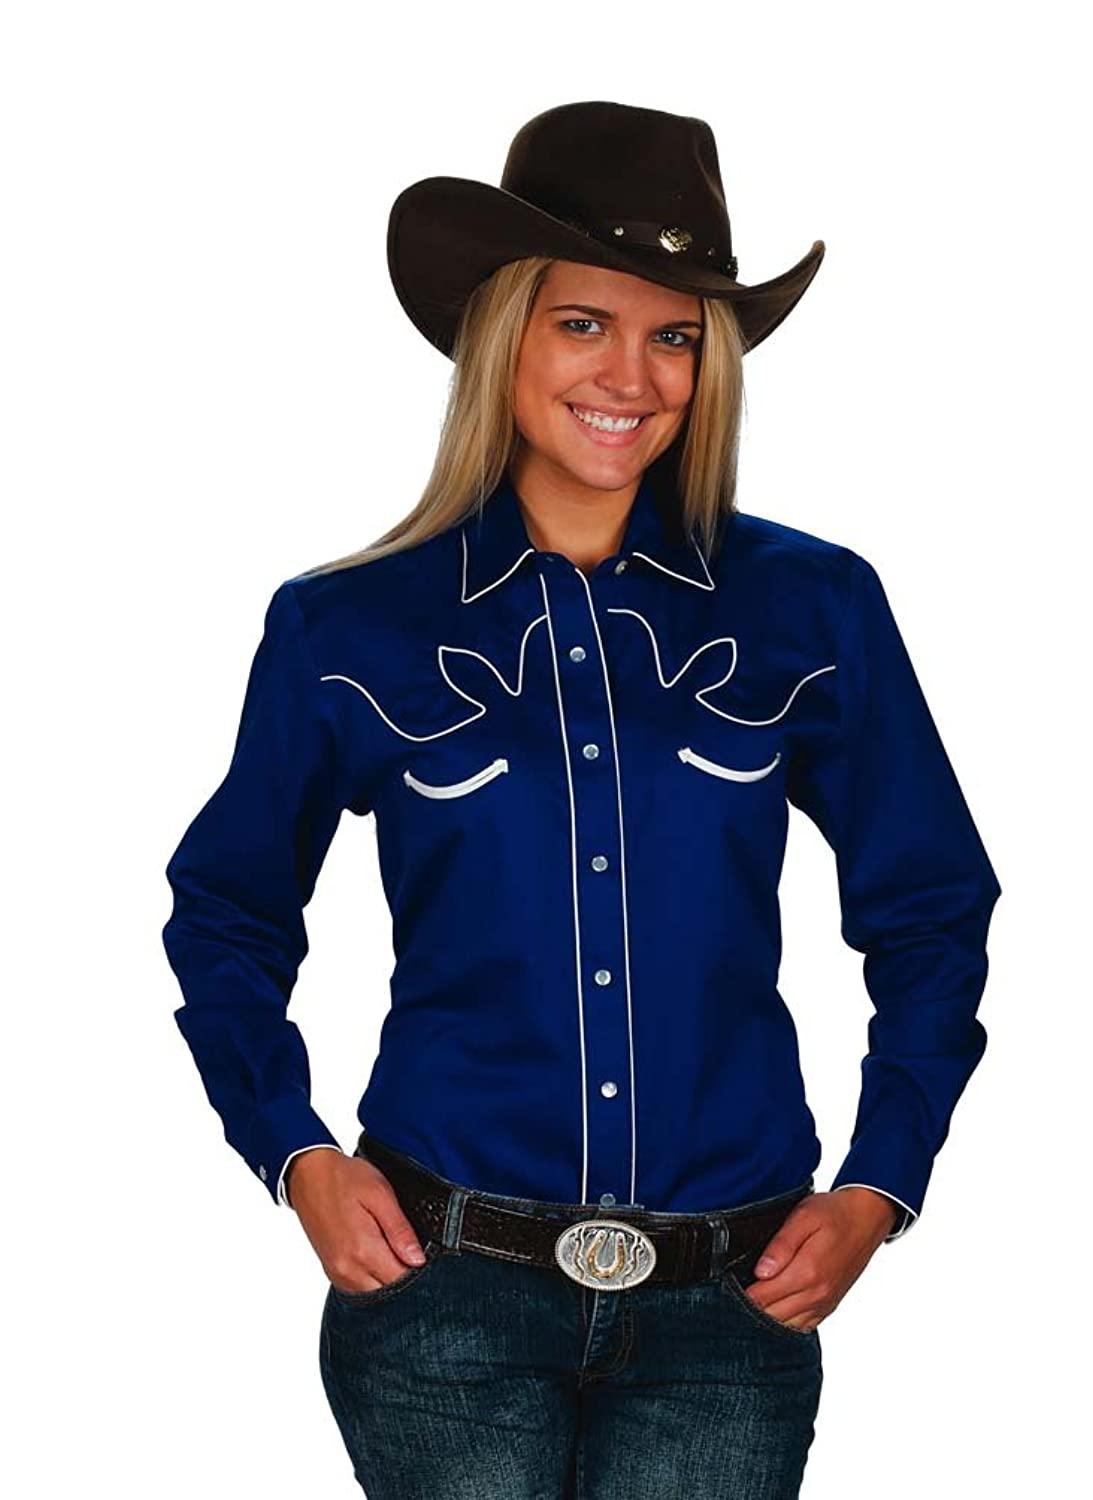 Women's Cotton Retro Western Cowboy Shirt